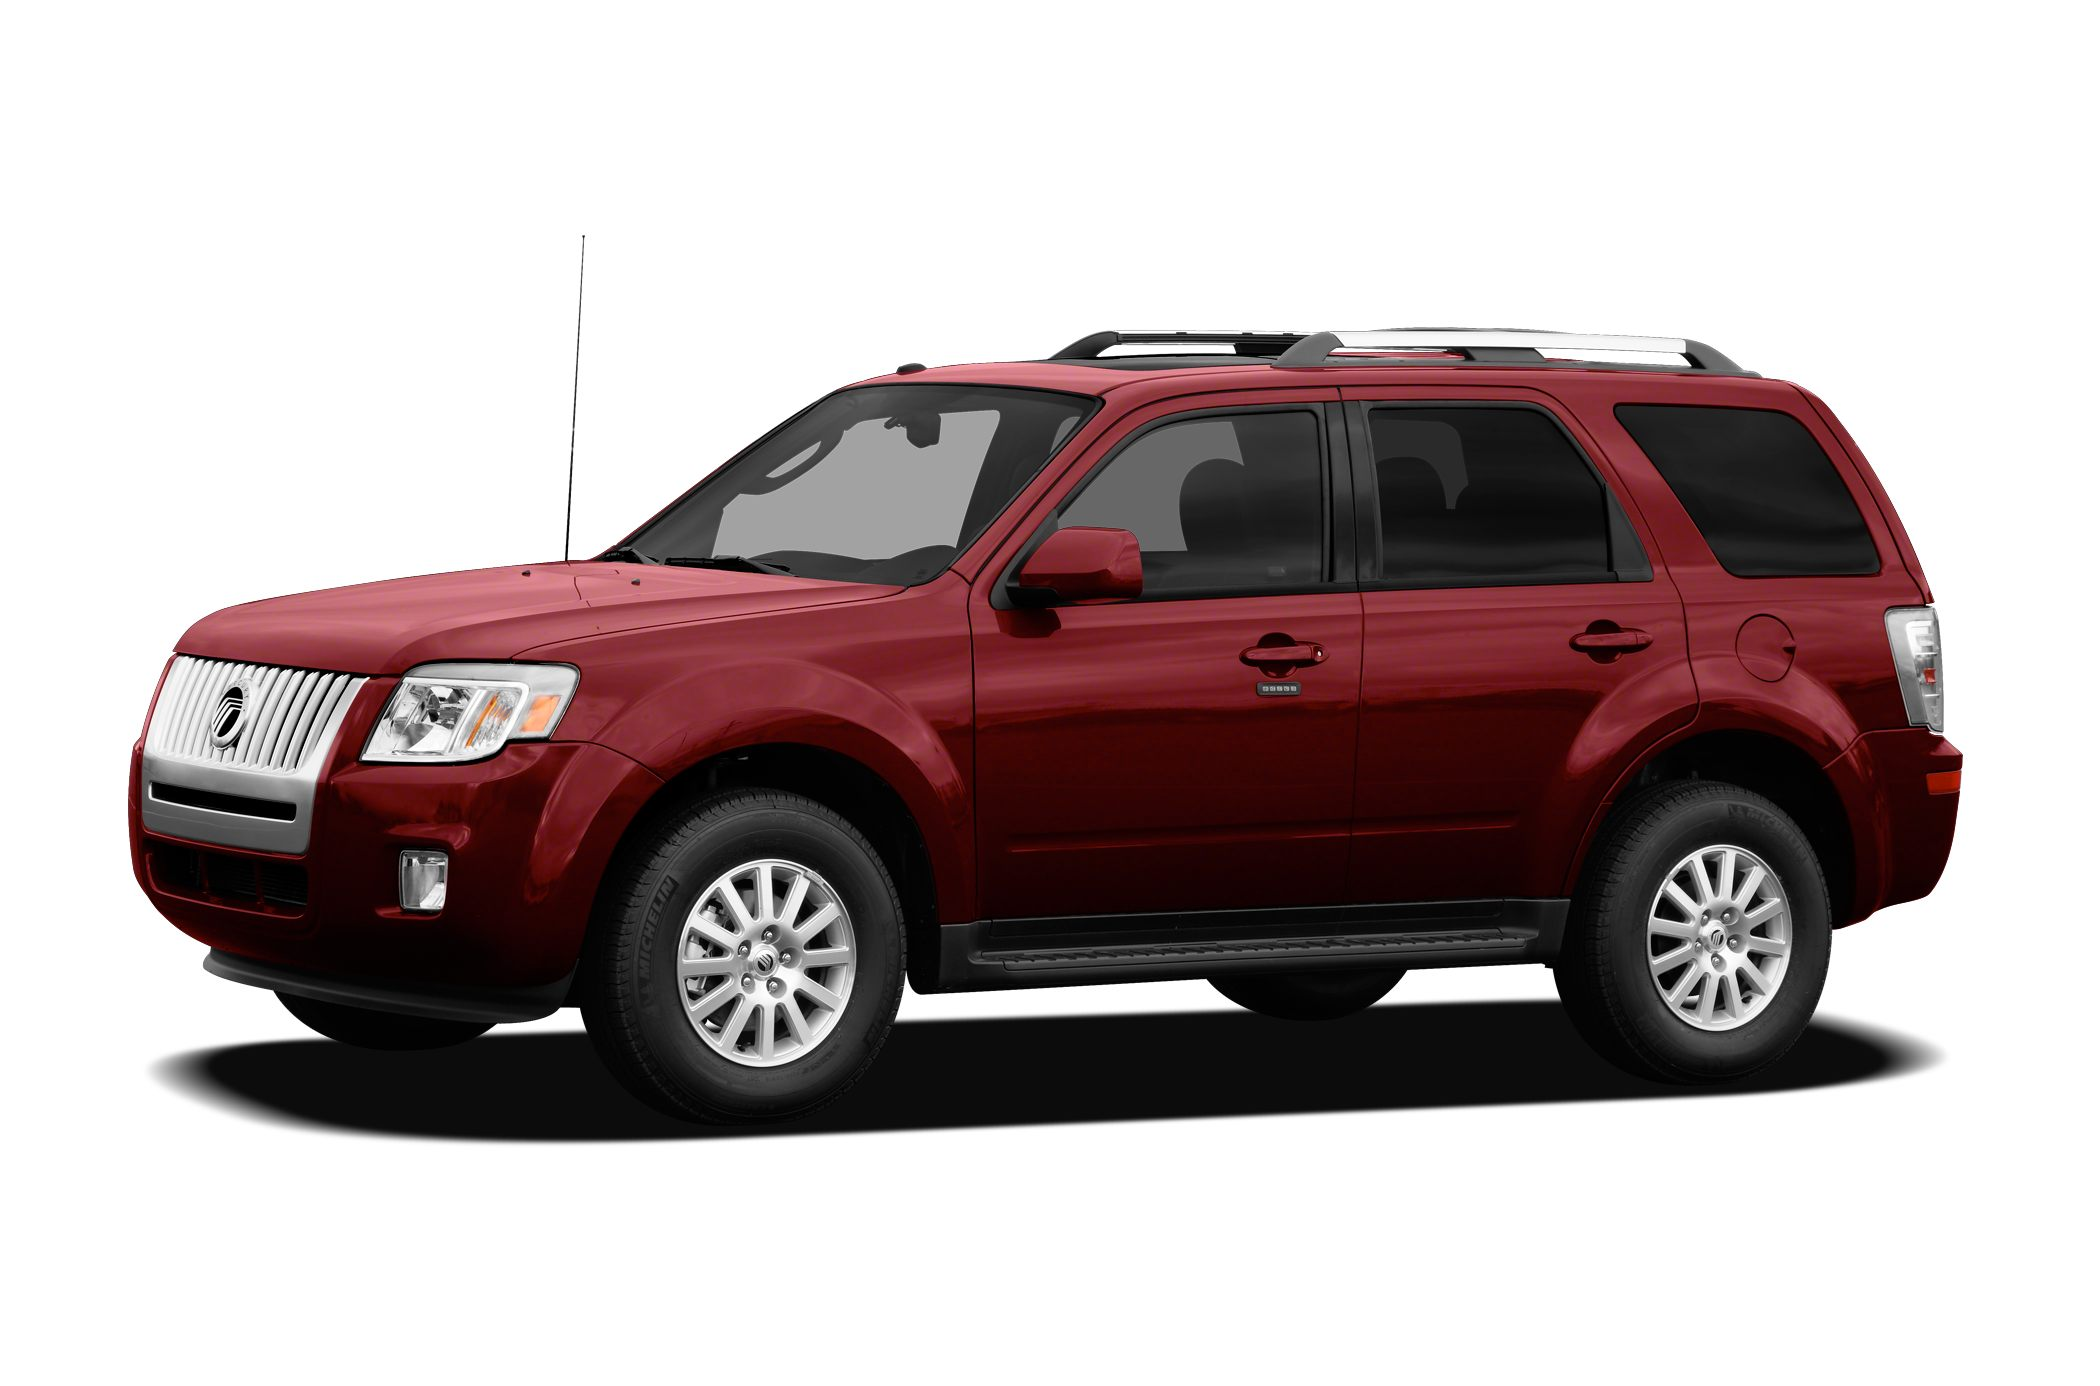 2010 Mercury Mariner Premier SUV for sale in Laurens for $14,995 with 63,158 miles